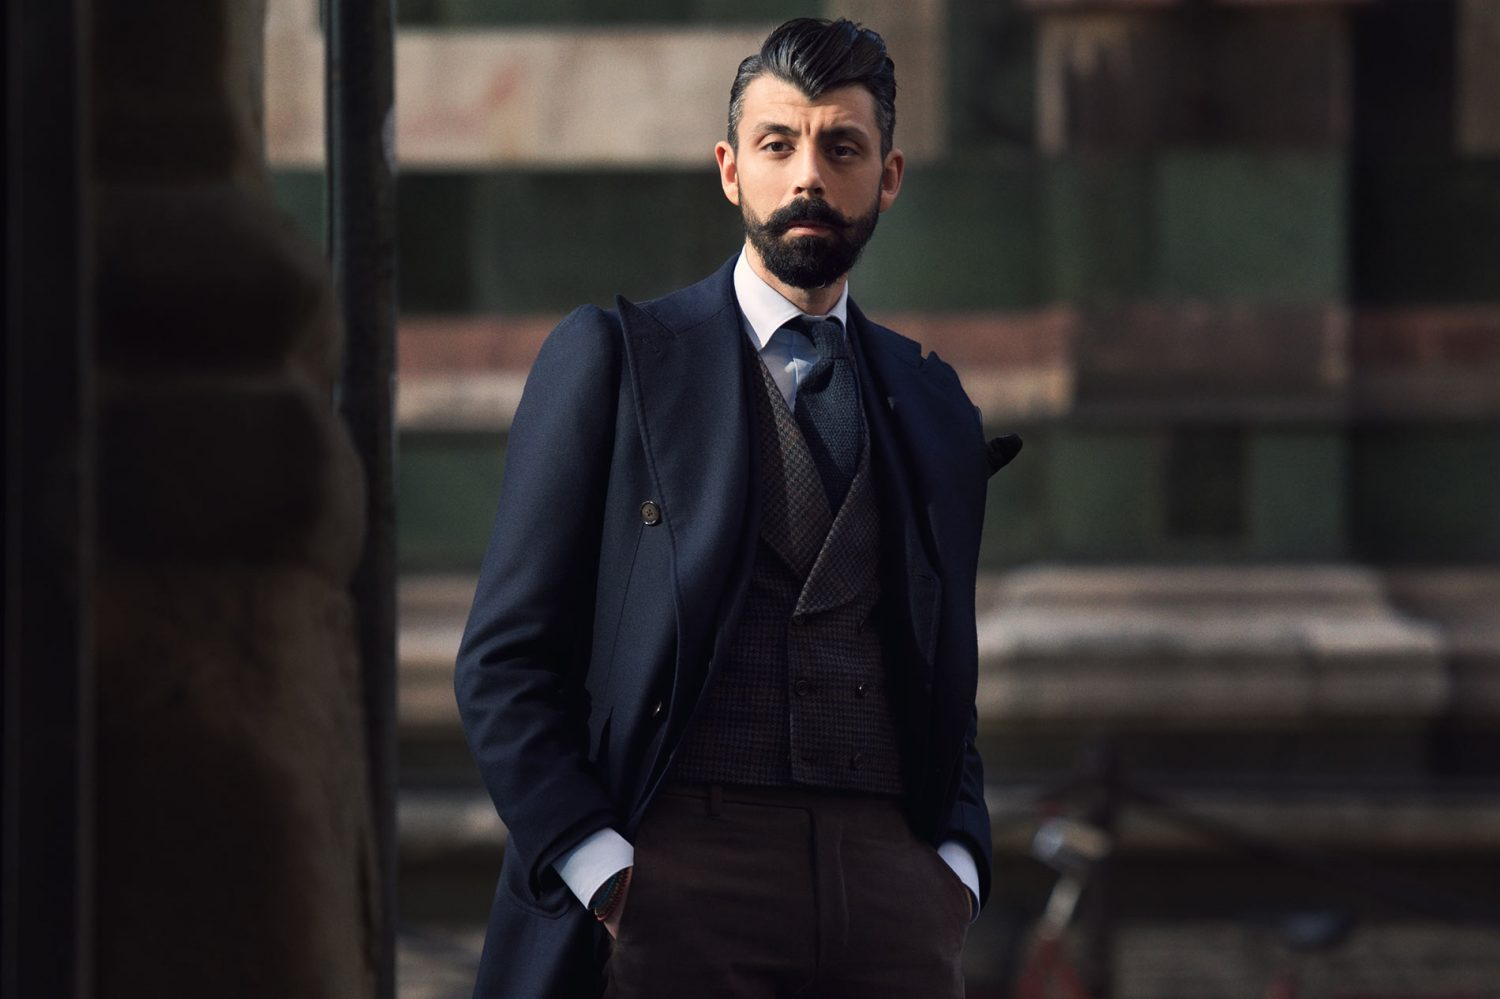 Christofer Kaprelian at Pitti Uomo 87